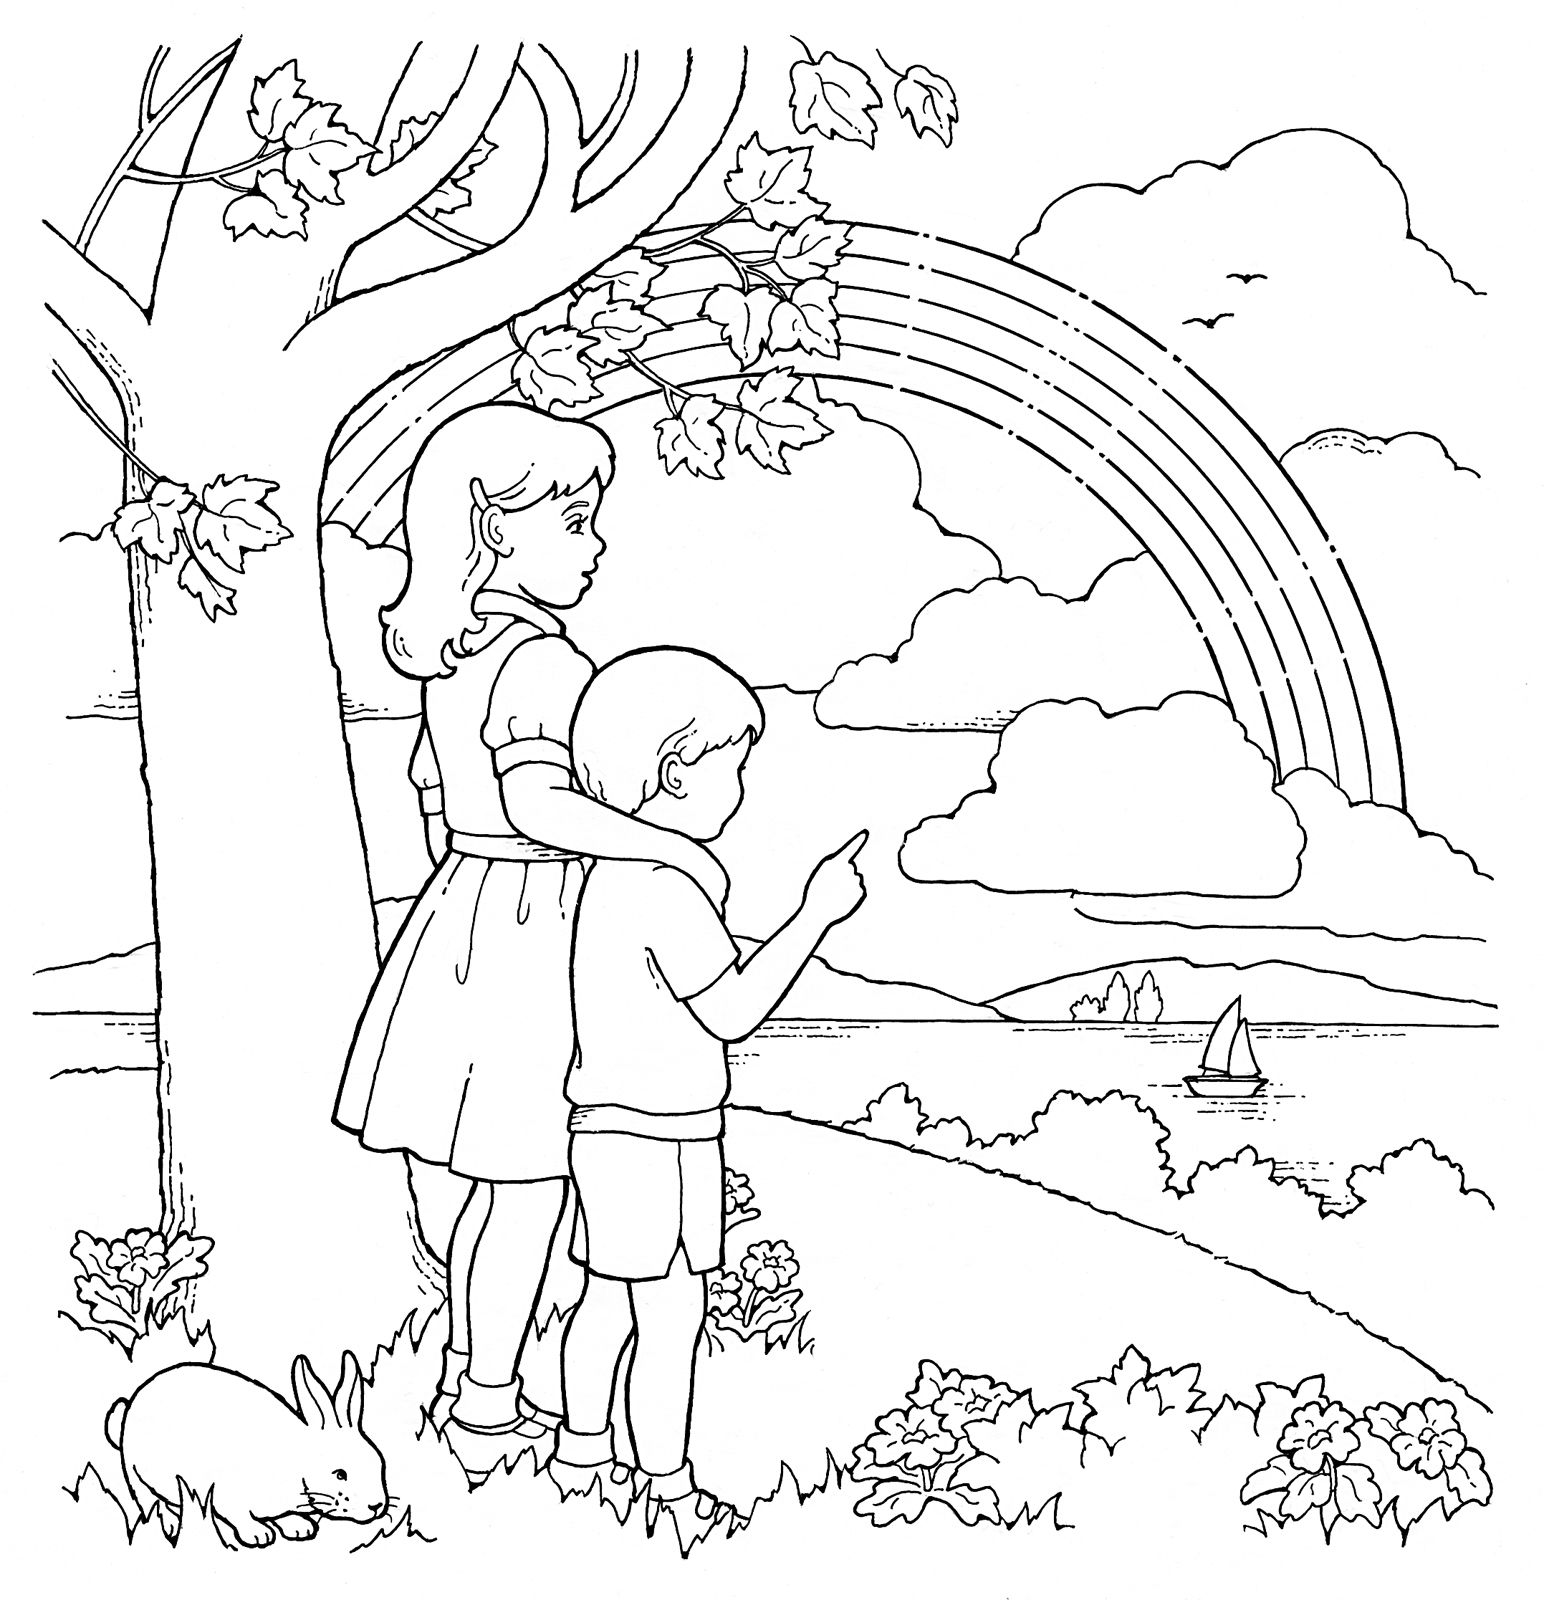 Ordinaire Lds Primary Coloring Pages Sketch Coloring Page